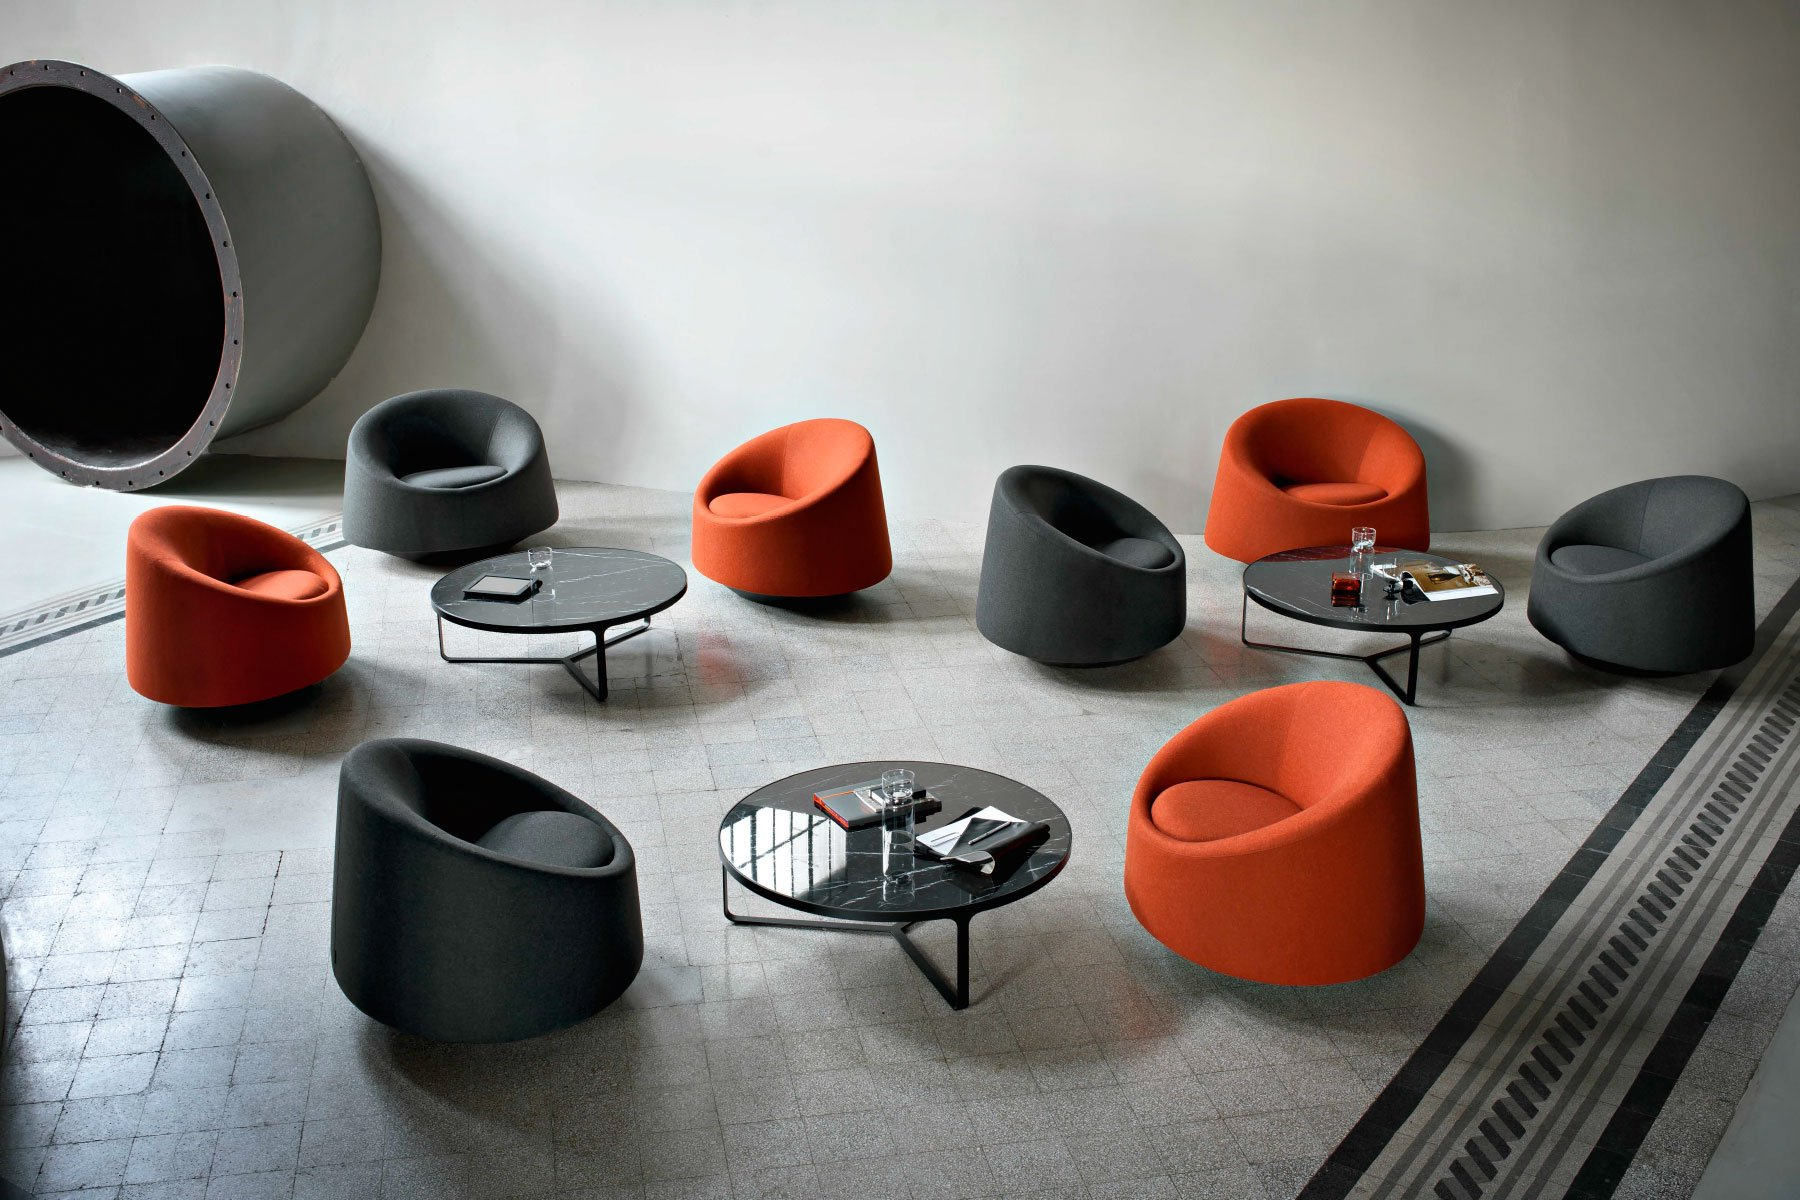 Crystal Armchair from Tacchini